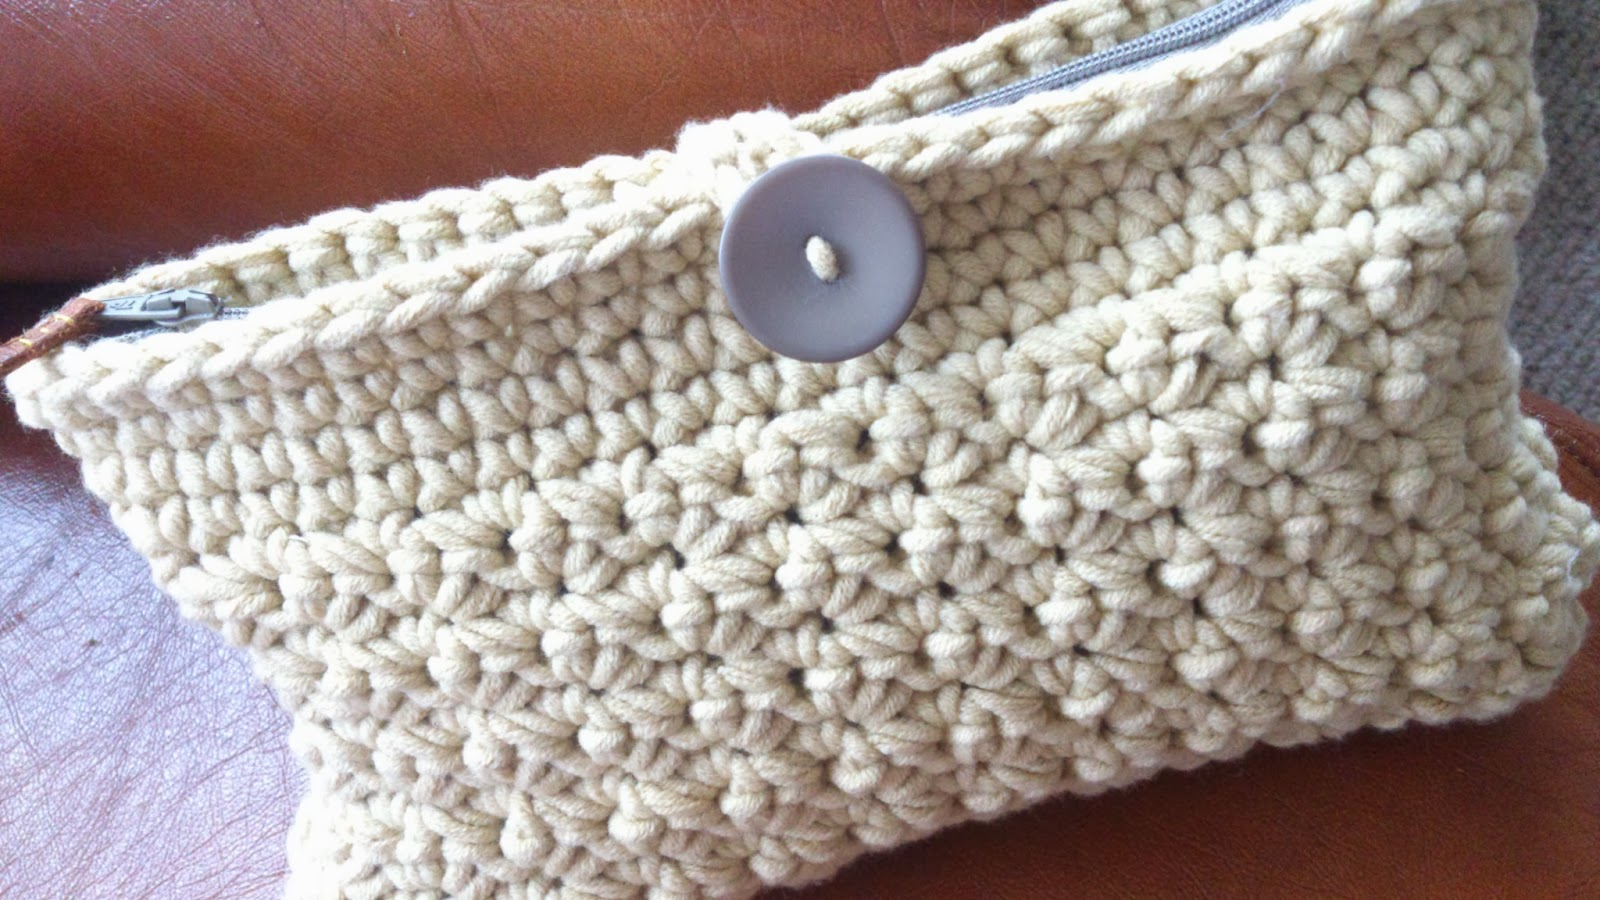 Crochet Clutch Bag Pattern : Of Ones Own Making: Crochet. Not just for Grandma: Crochet Clutch Bag